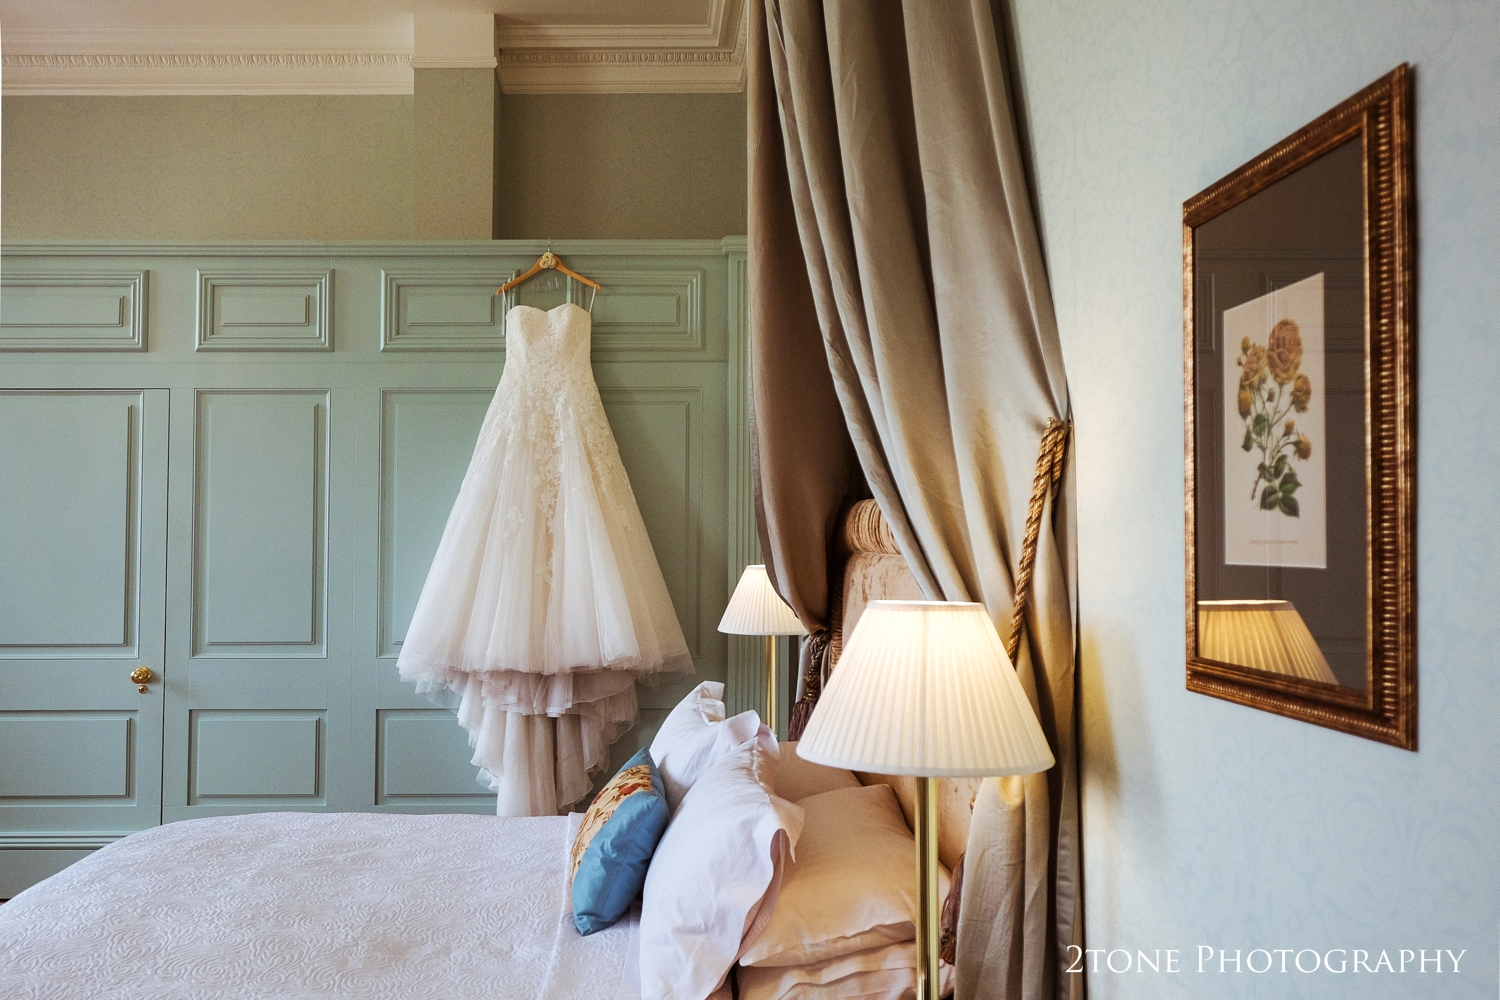 Sonia's stunning wedding gown by Pronovias hanging in Wynyard Hall's Frances Anne suite.